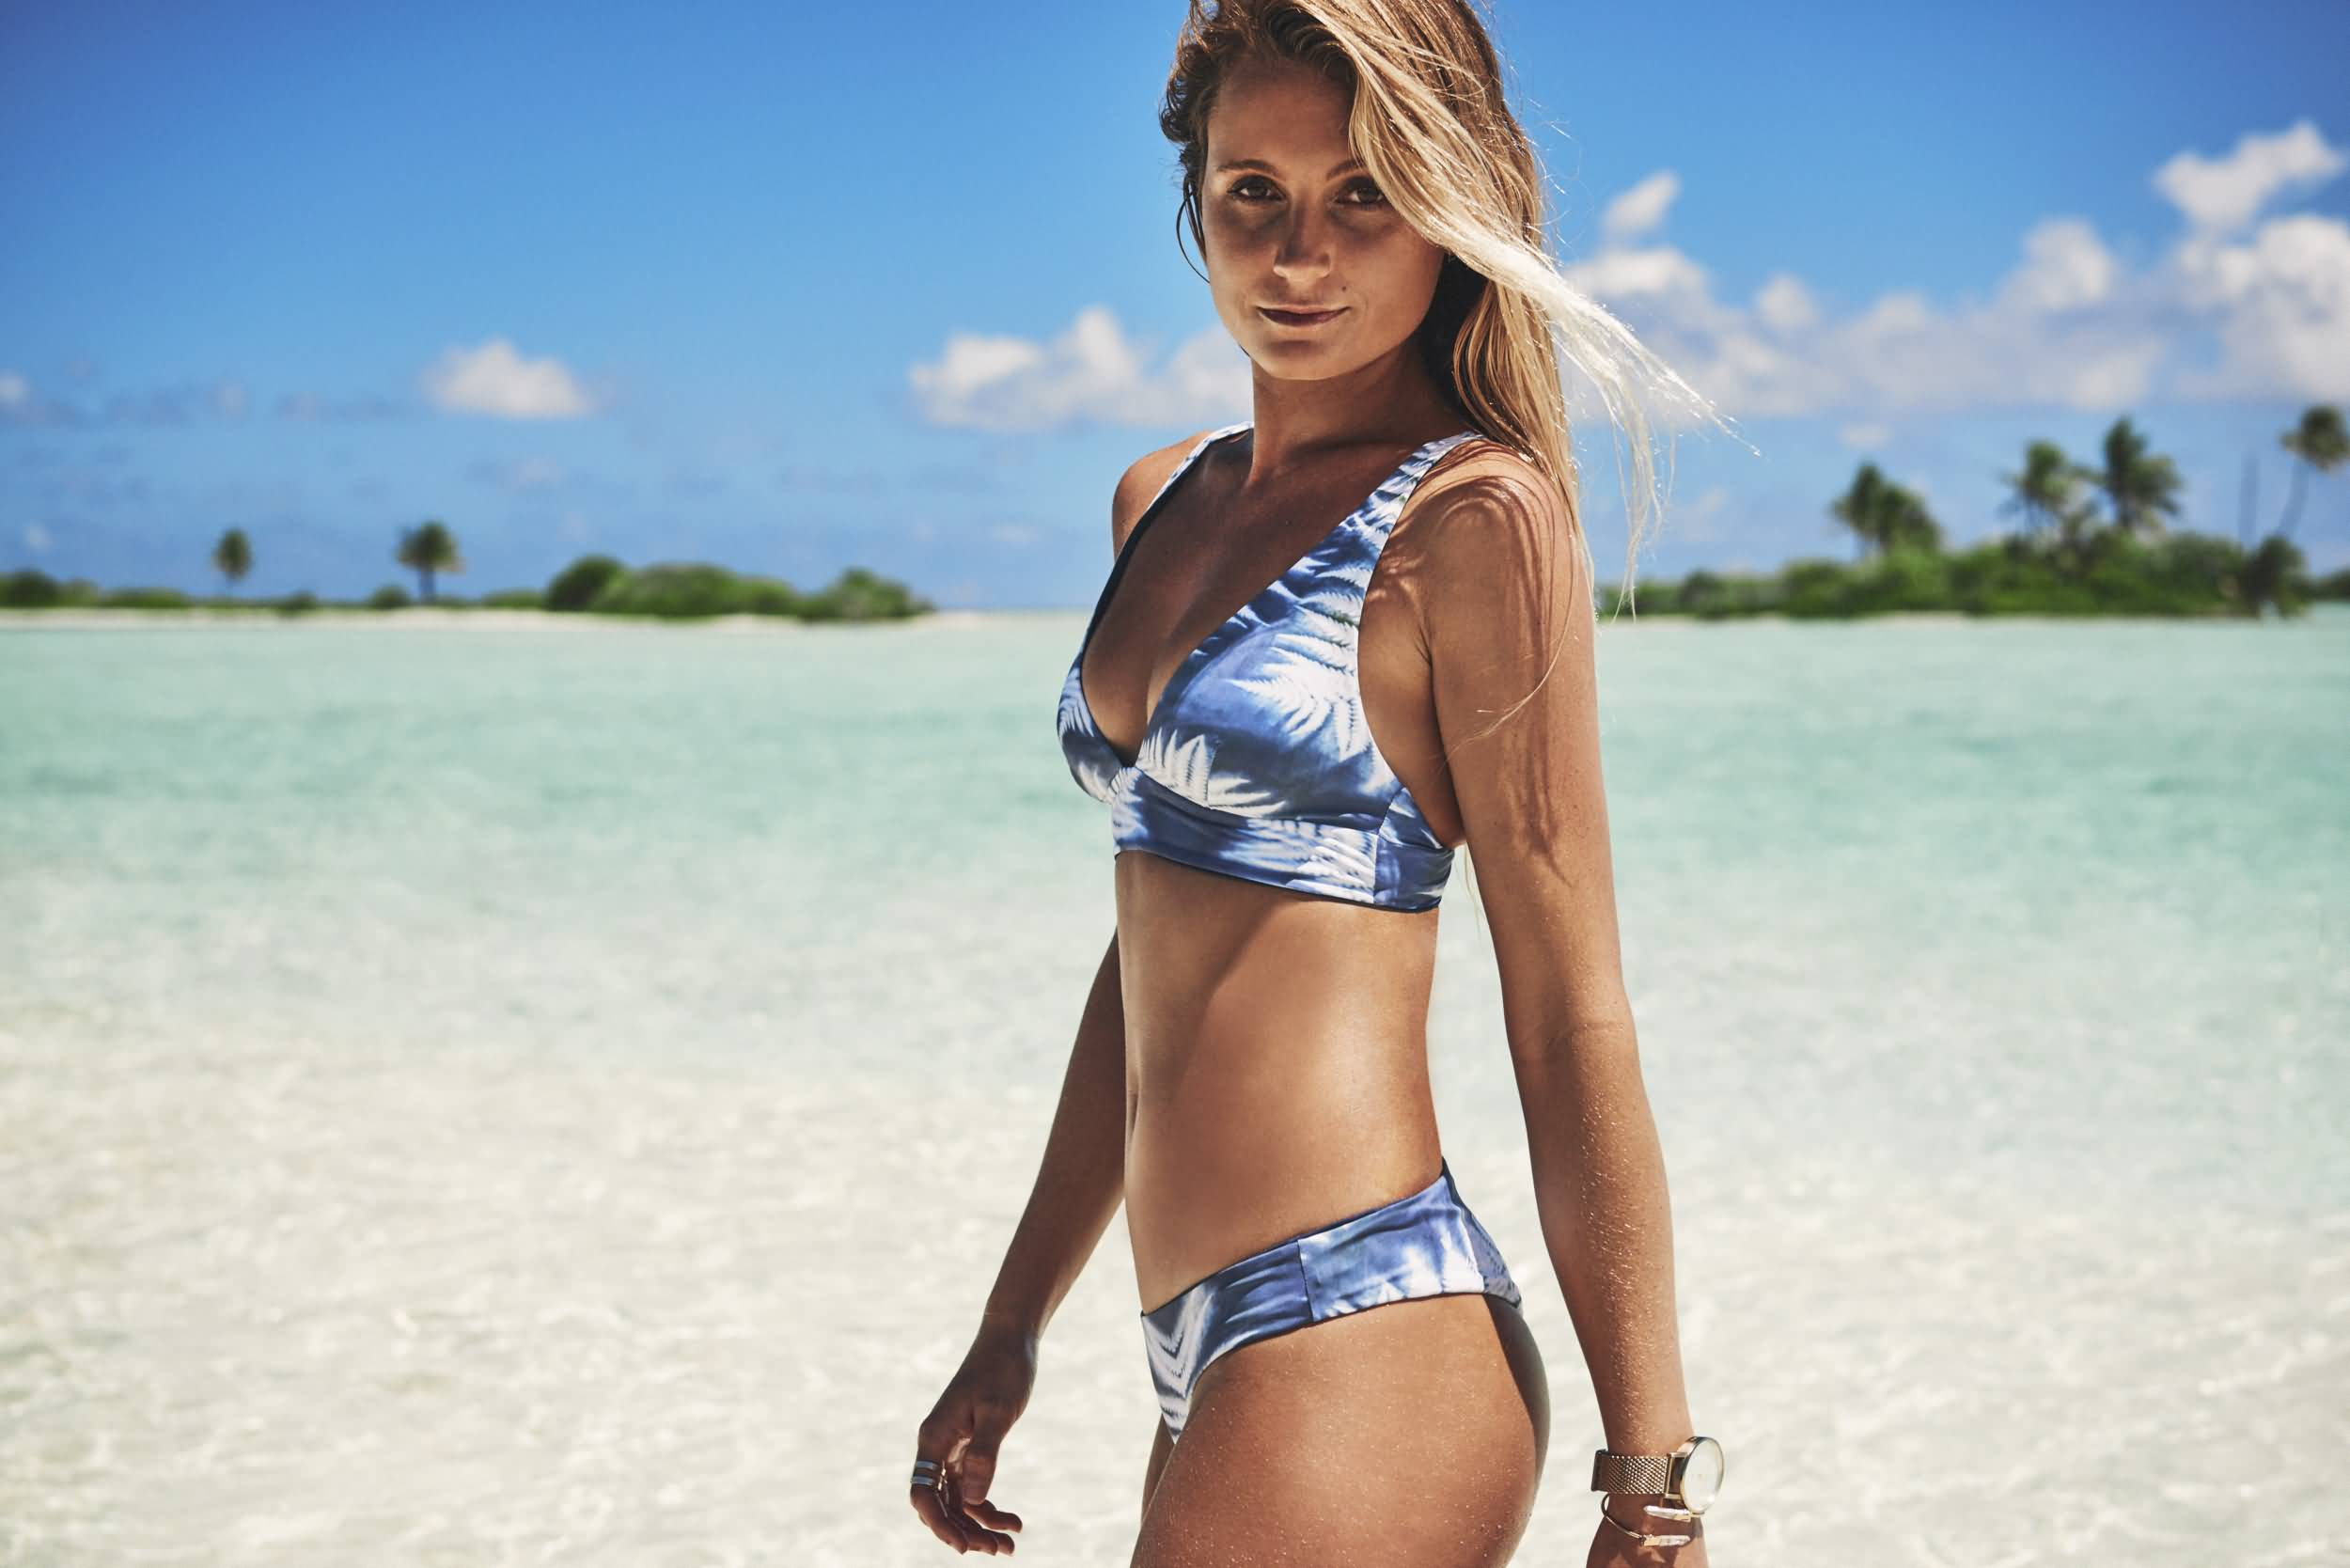 Rip Curl Womens Swimwear Fall 2017 My Bikini Fashion Collection